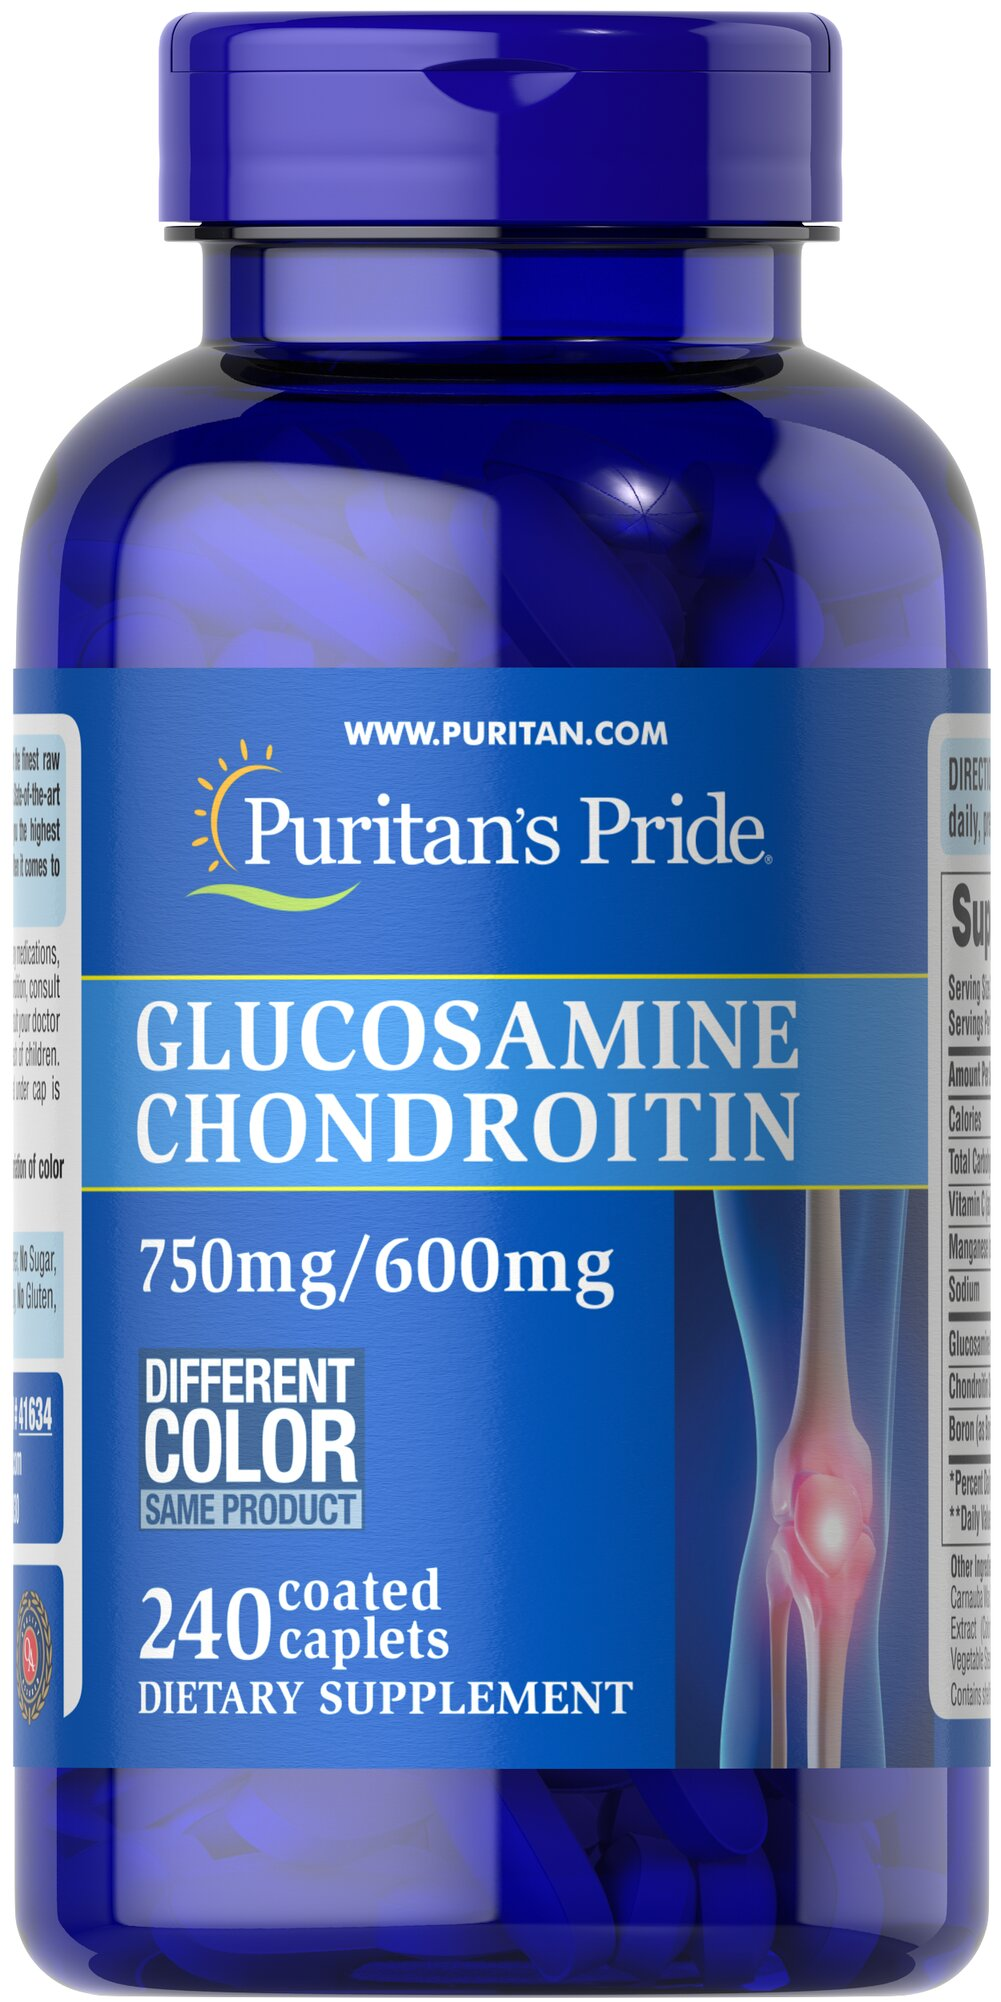 Triple Strength Glucosamine Chondroitin 750 mg/600 mg <p>Glucosamine is a key structural component in cartilage and acts as a lubricant**</p><p>Chondroitin acts as a lubricant and is an important molecular component of glycosaminoglycans**</p><p>One serving of Triple Strength Glucosamine Chondroitin helps promote comfortable joint movement and two caplets provide 1500 mg Glucosamine and 1200 mg Chondroitin.</p> 240 Caplets 750 mg/600 mg $71.98